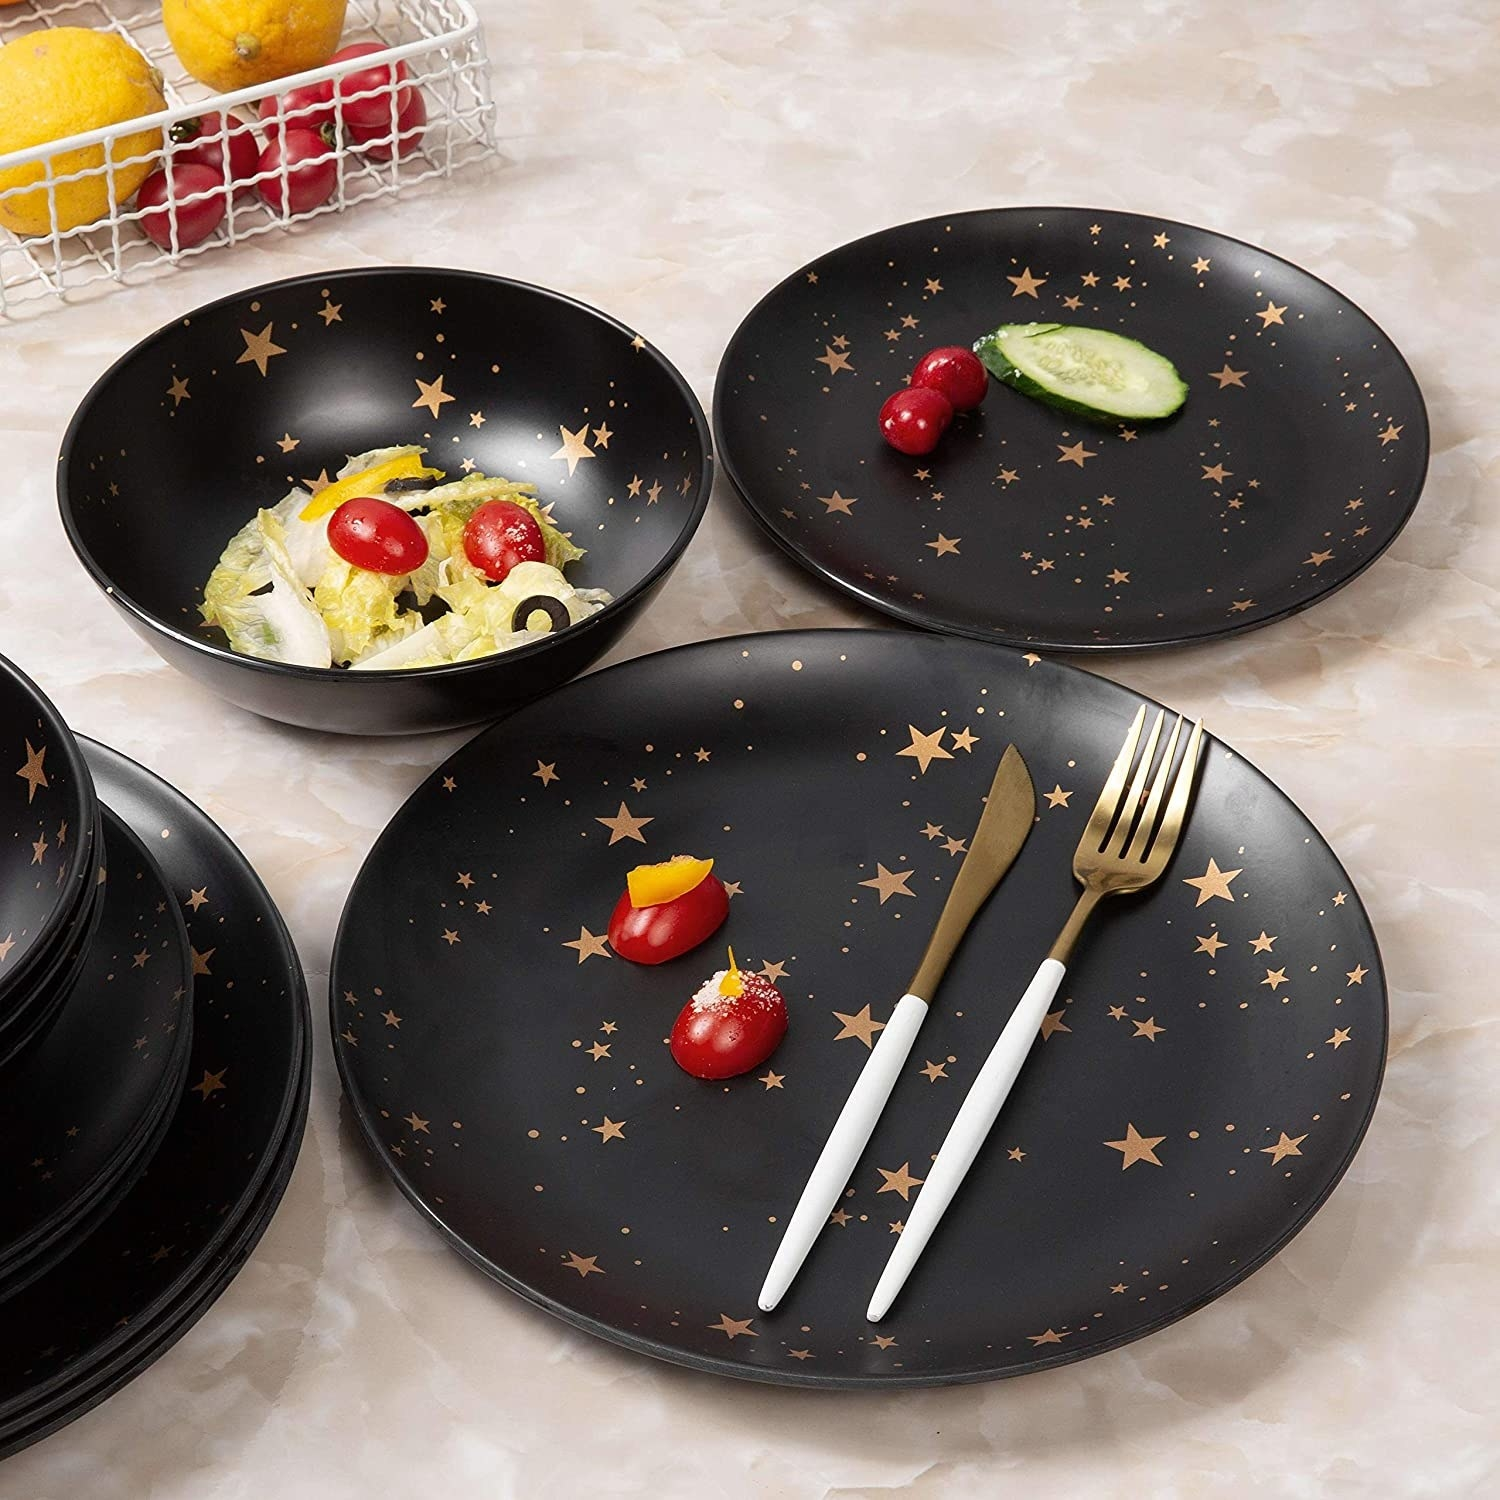 Several matching plates and bowls covered in gold stars